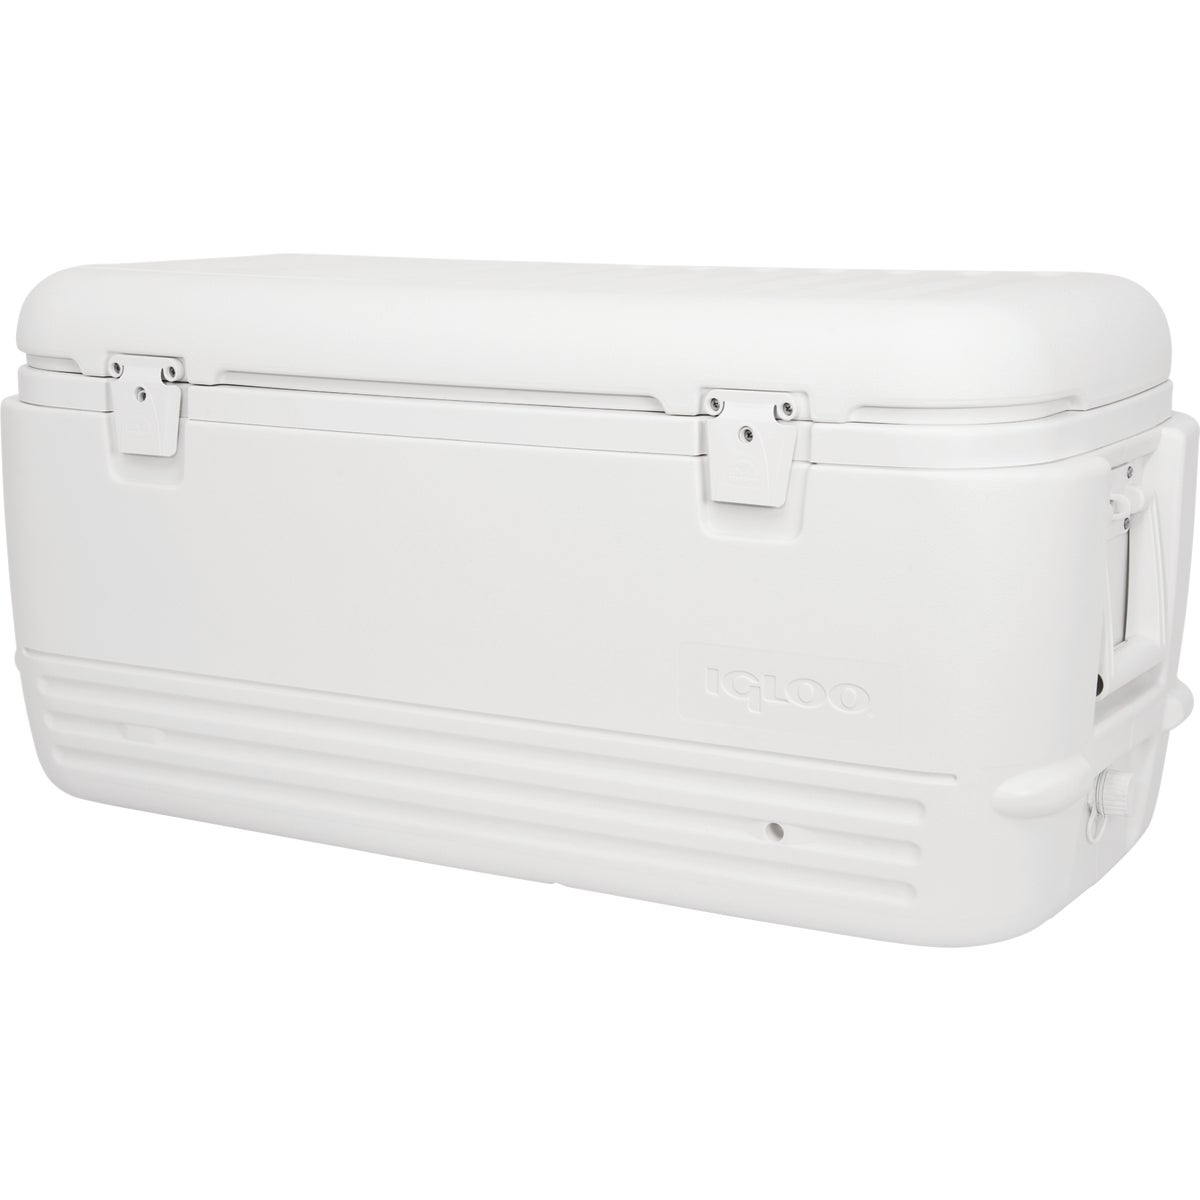 QUICK & COOL 100 COOLER - 11442 by Igloo Corp